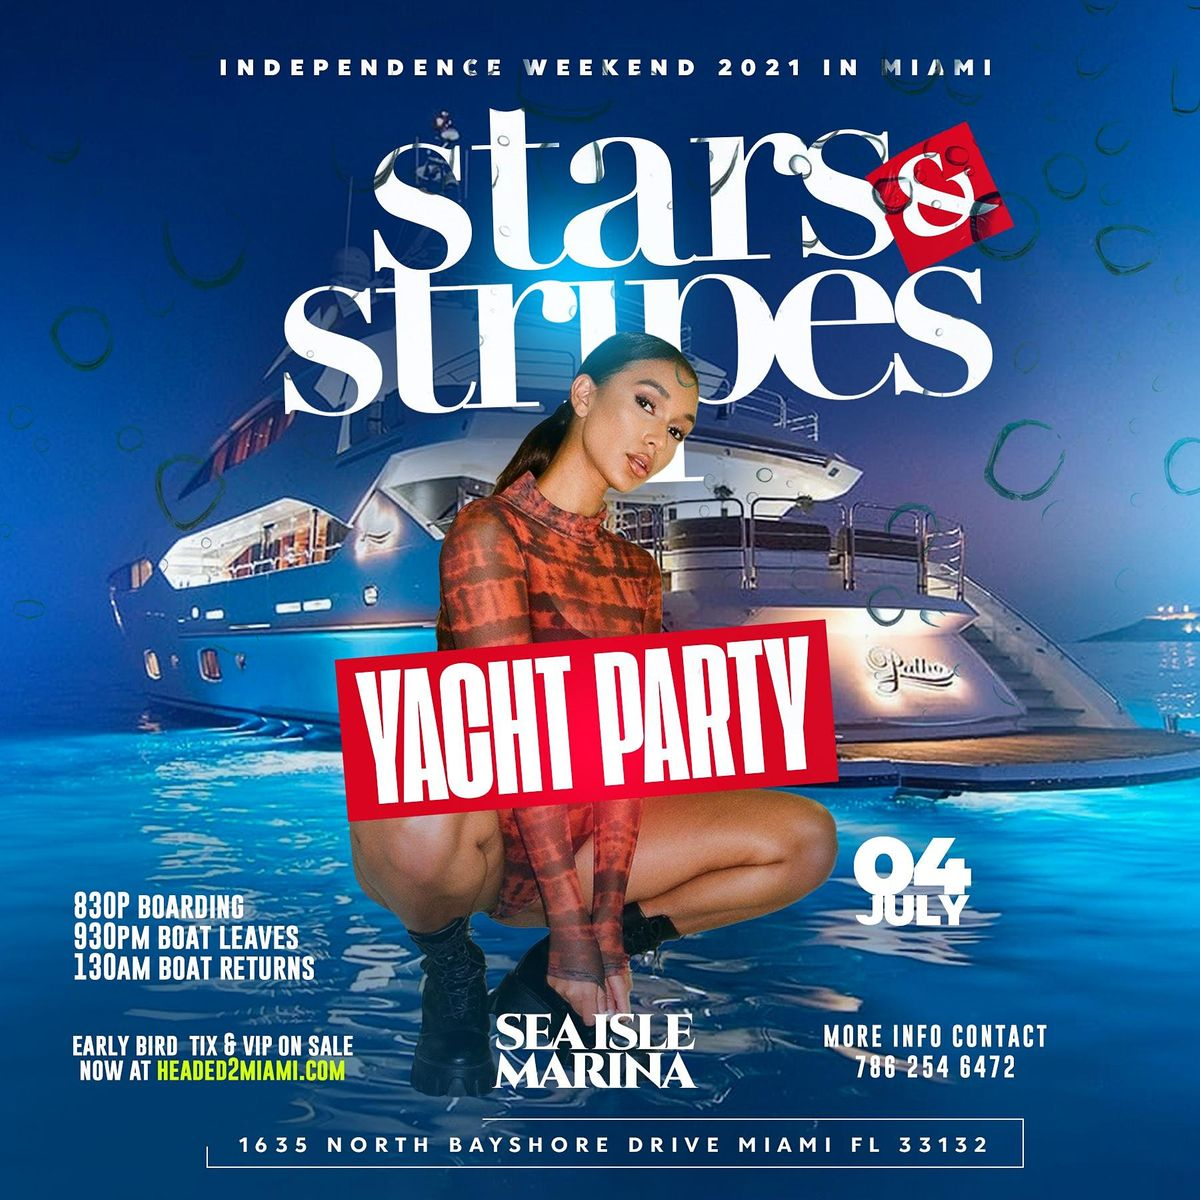 MIAMI STARS N STRIPES YACHT PARTY (Red White & Blue), 3 July | Event in Miami | AllEvents.in